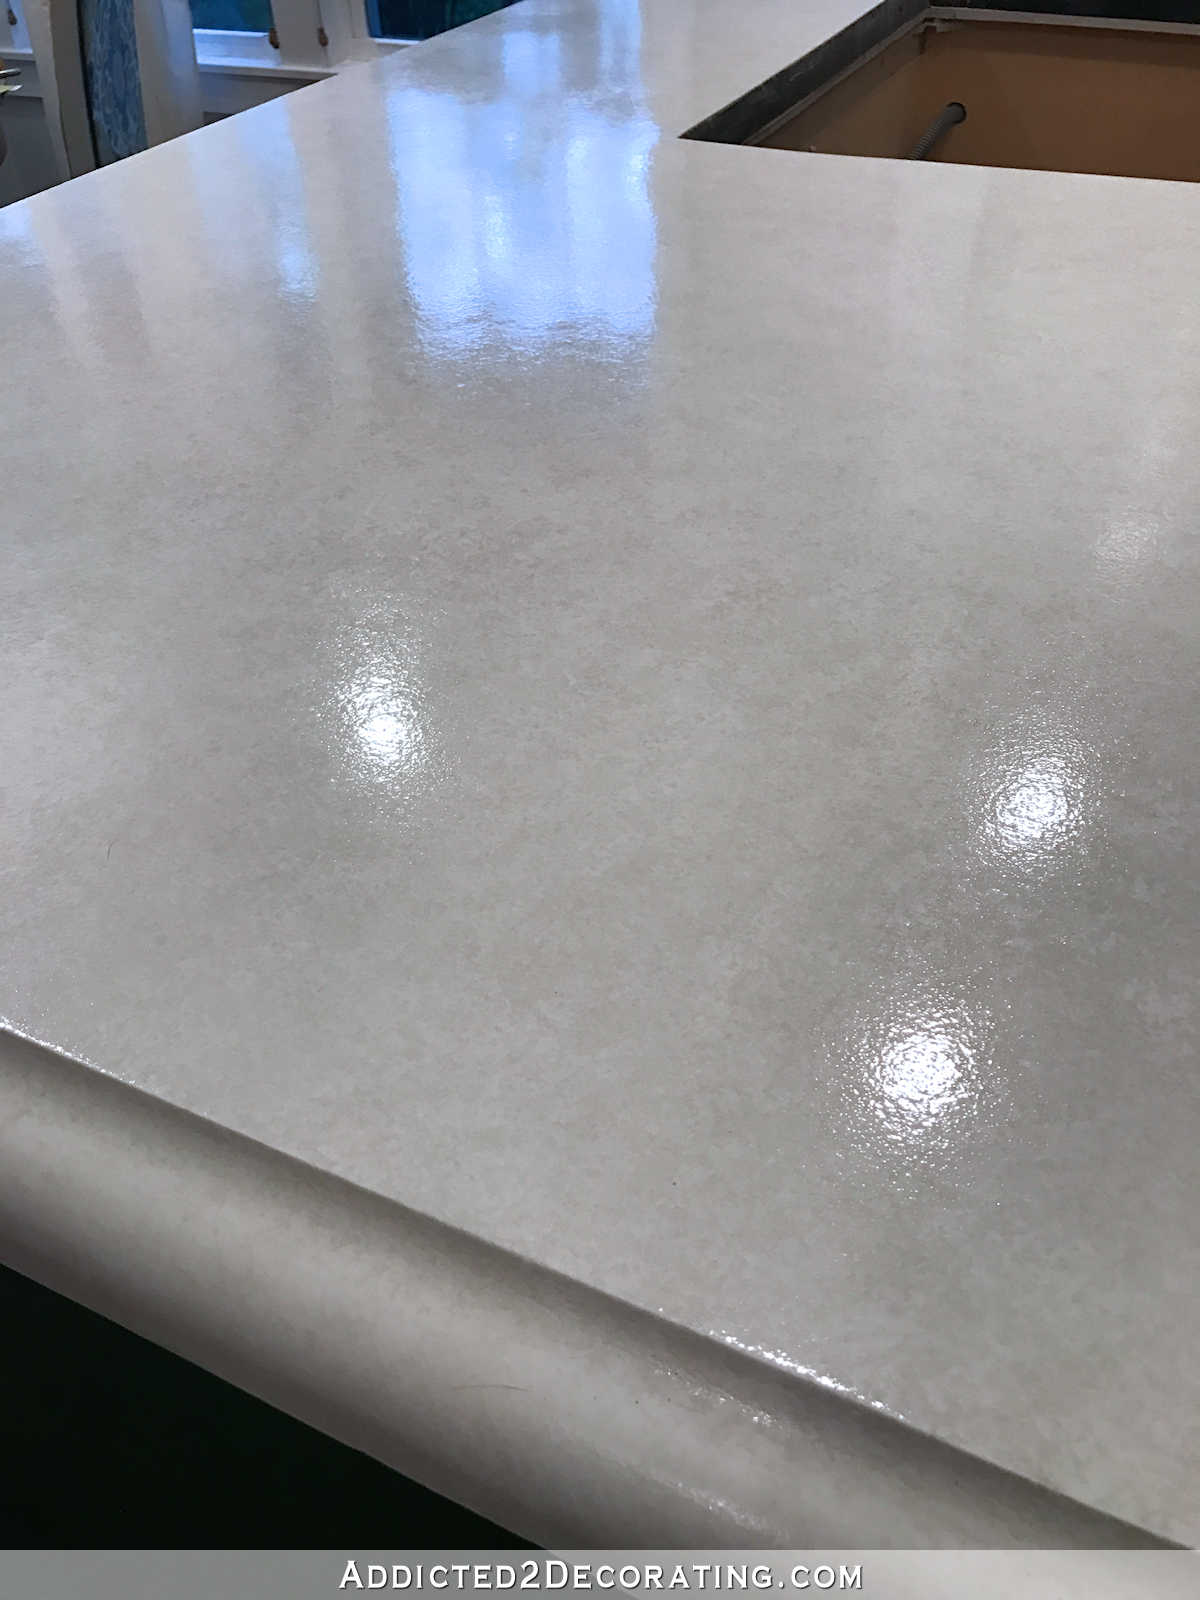 Clear Satin Epoxy Paint For Countertops : My finished refinished concrete countertops top coated